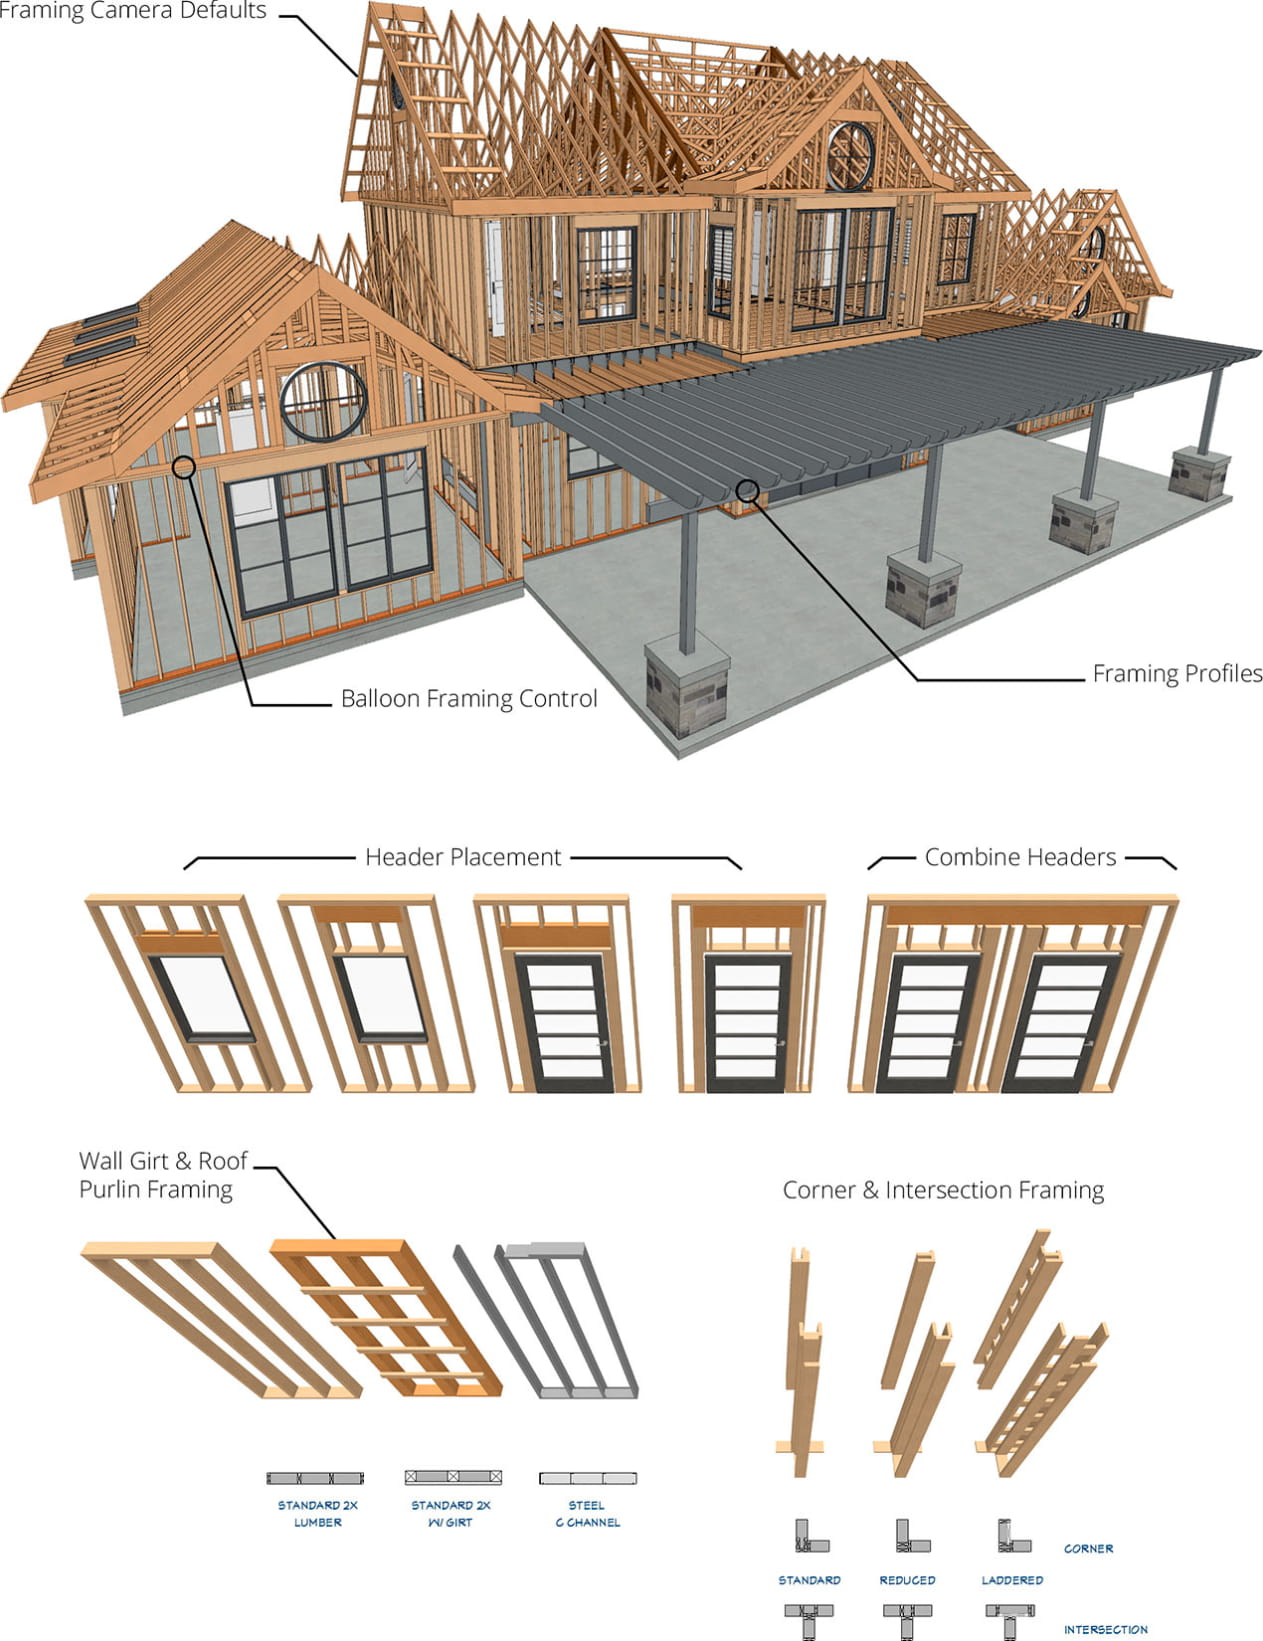 House exterior with new Chief Architect framing features and examples of headers, corner, wall girt and roof purlin framing.